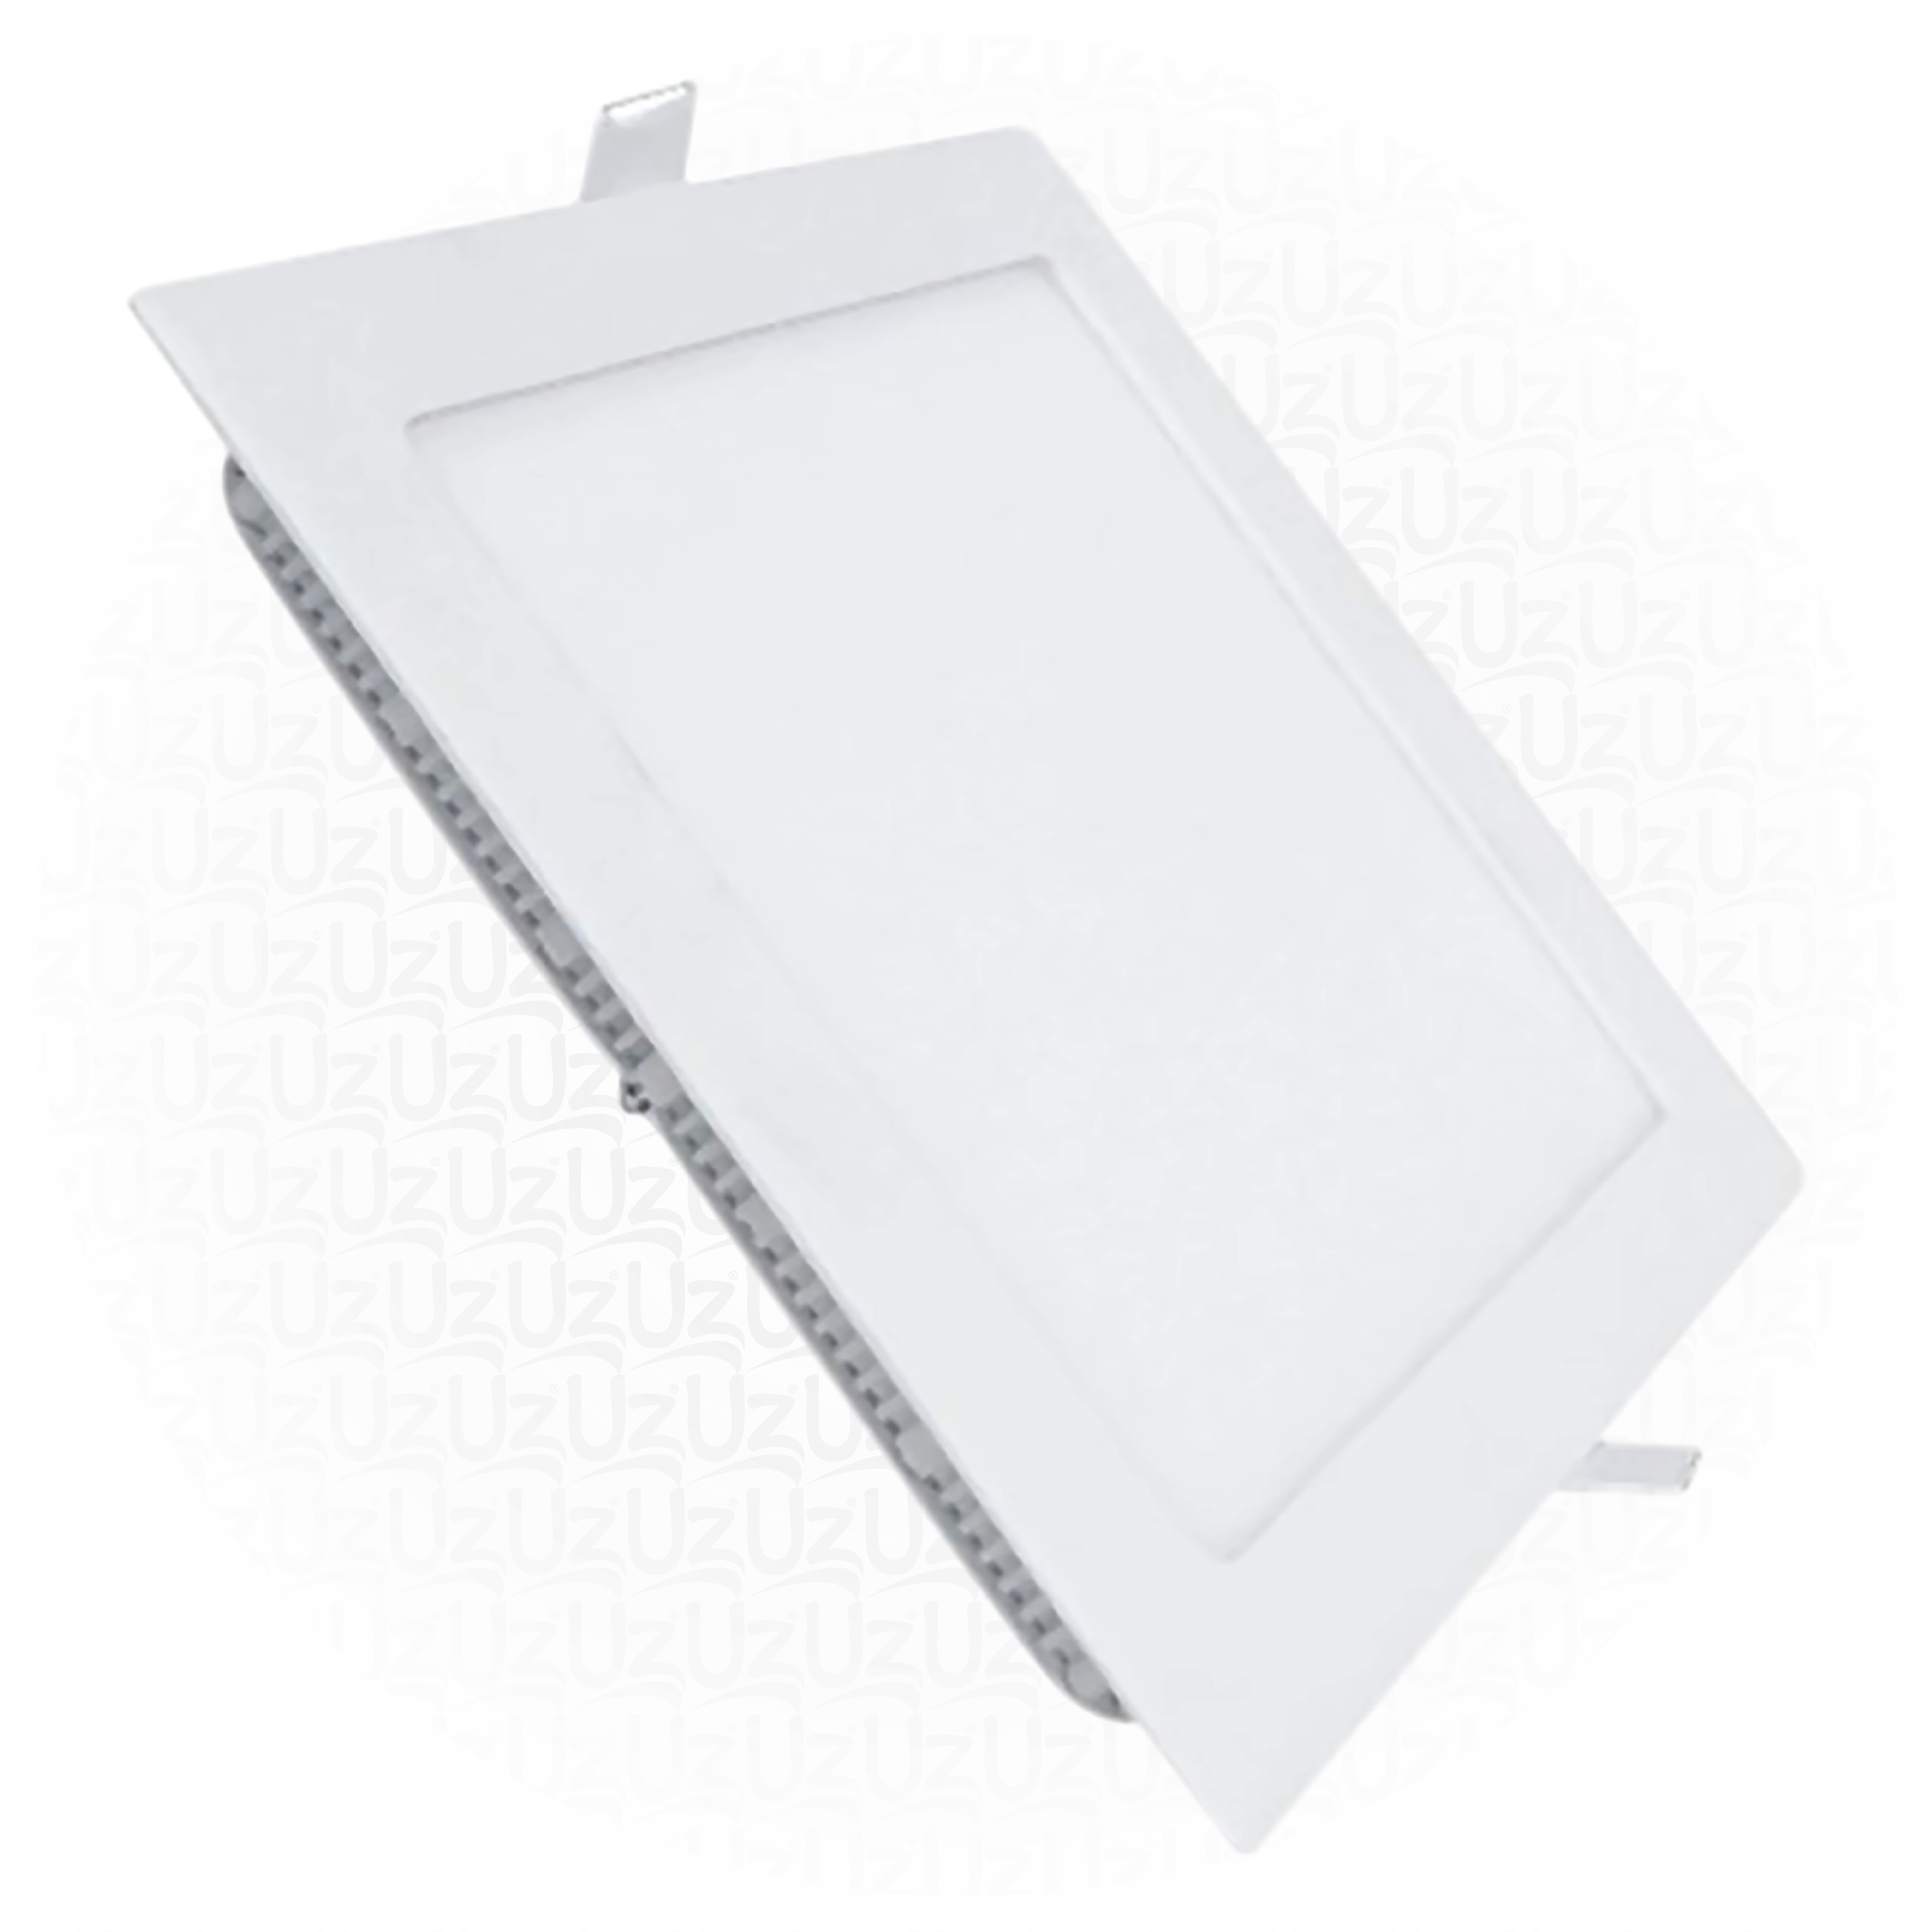 "OSRAM LED SLIM PANEL DOWN LIGHT SQUARE 4"" 9W Daylight 6500K"